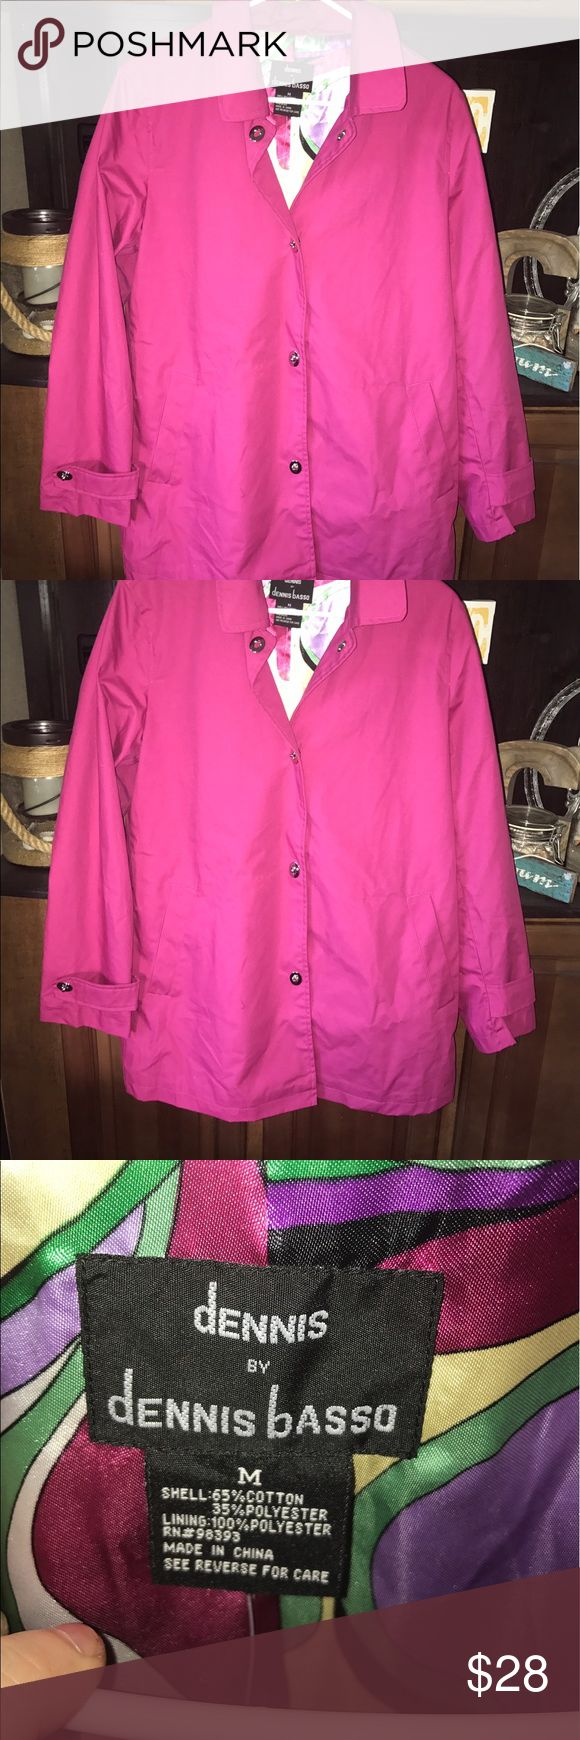 BNWT pink jacket Medium, from QVC dennis by dennis basso Jackets & Coats Trench Coats